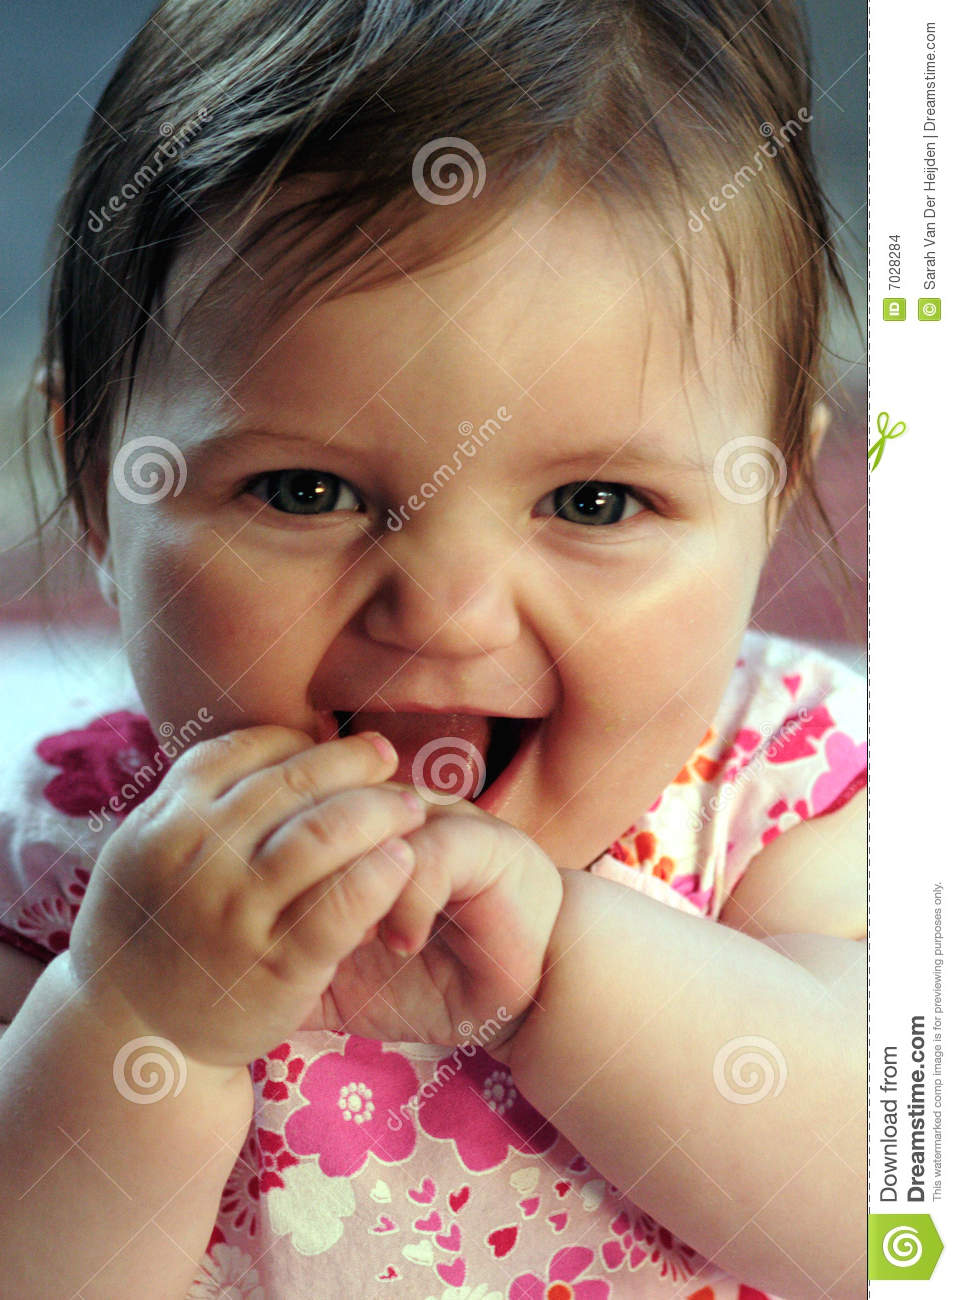 c0fa707db6cf Cute baby girl smiling stock photo. Image of grinning - 7028284